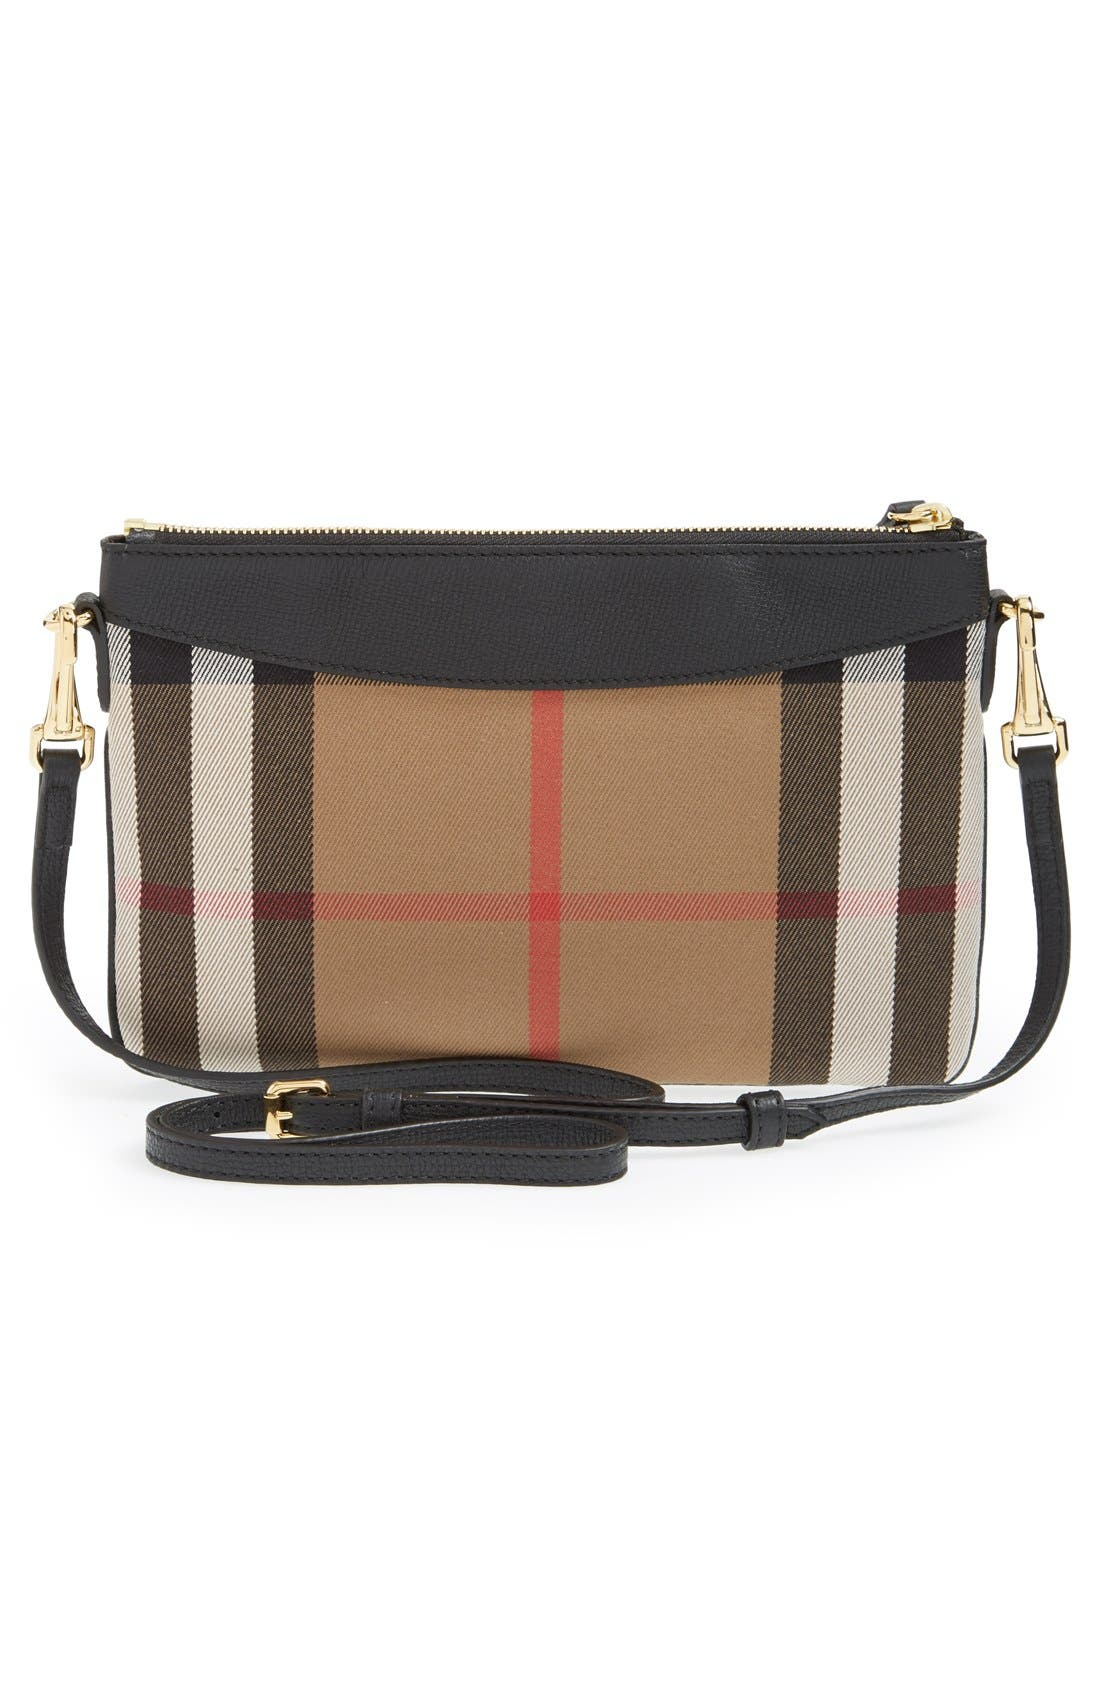 BURBERRY, 'Peyton - House Check' Crossbody Bag, Alternate thumbnail 5, color, 001